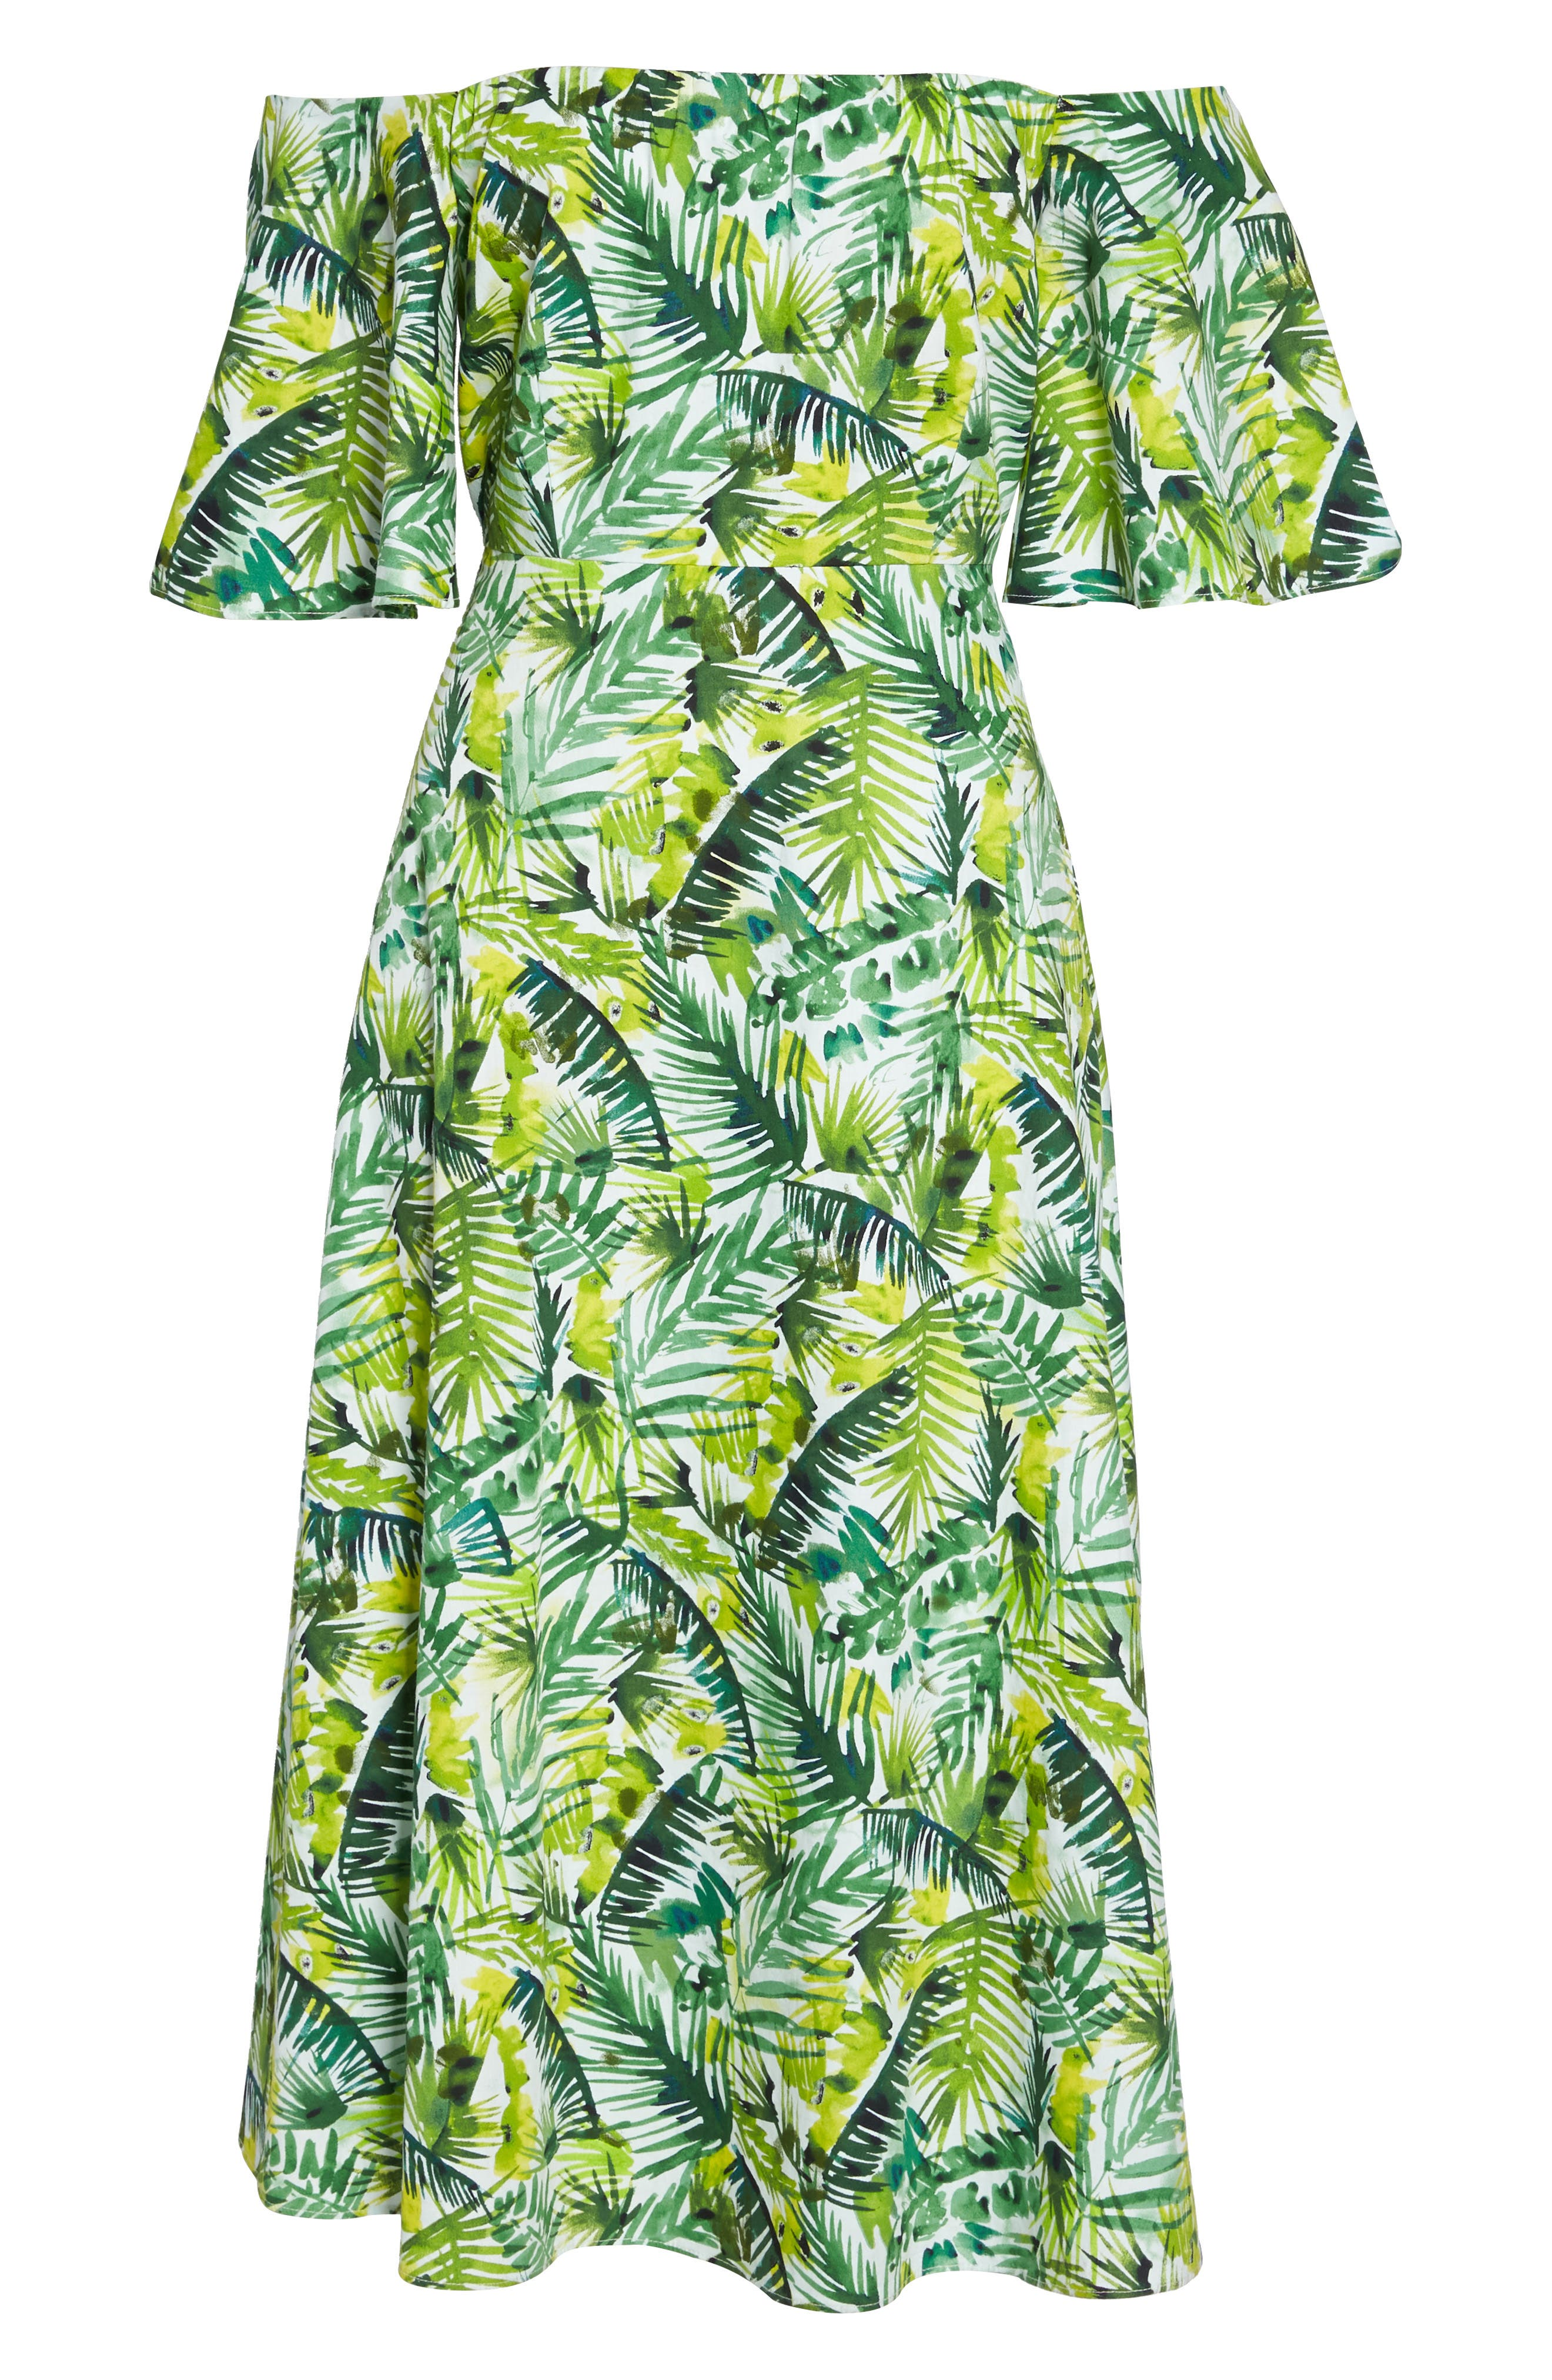 Palm Print Off the Shoulder Dress,                             Alternate thumbnail 6, color,                             Soft White/ Green